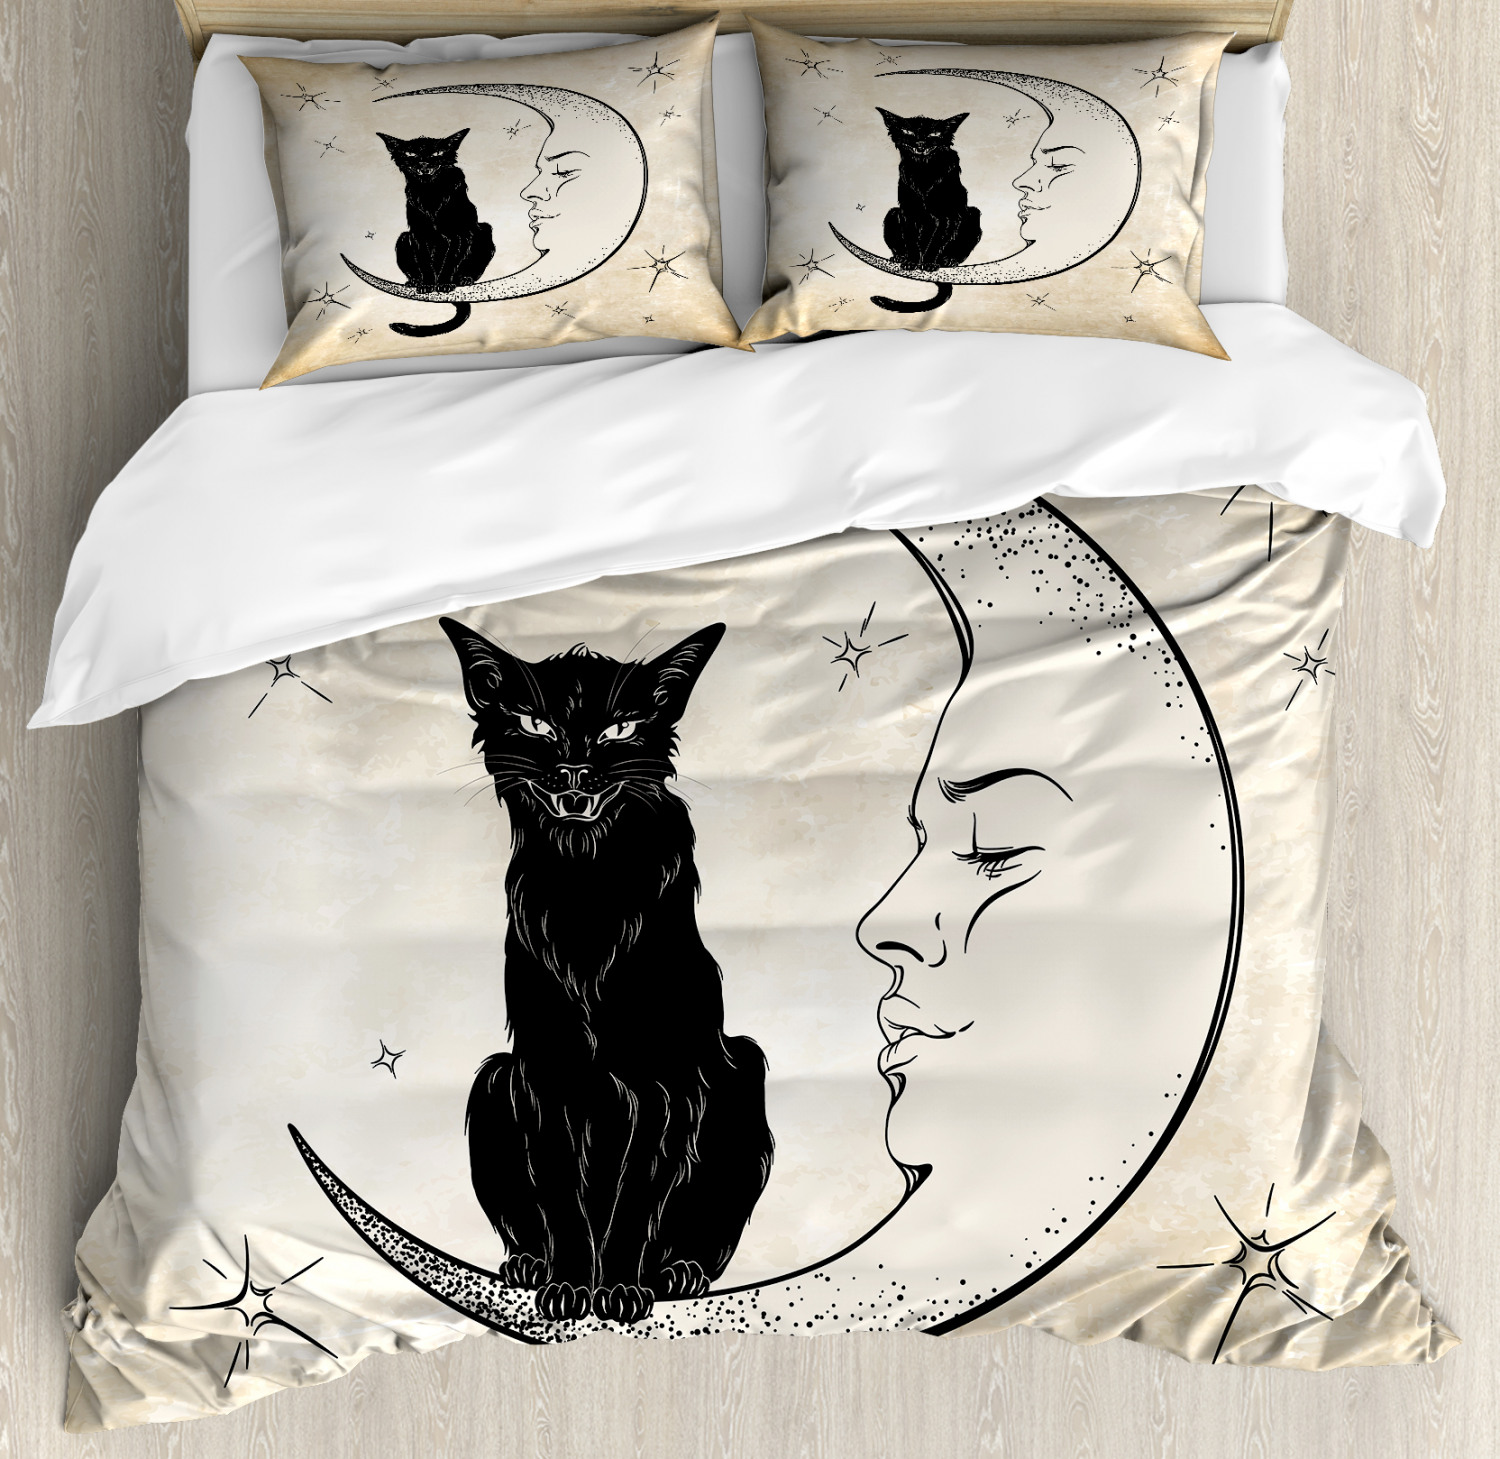 Moon Duvet Cover Set with Pillow Shams Black Cat Siting on M